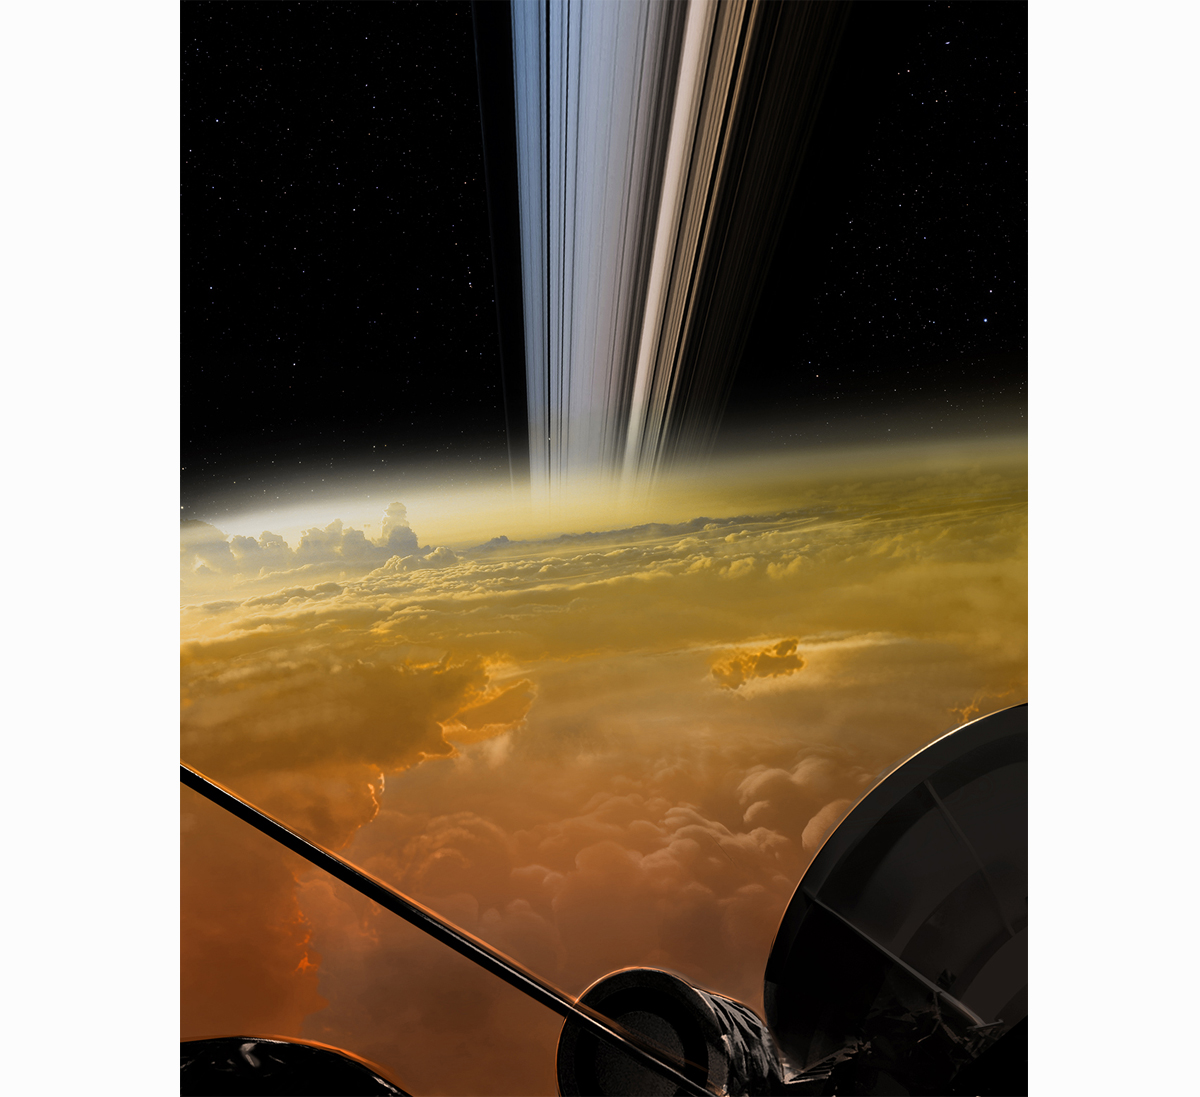 Image I created for the Cassini Mission team to help communicate what would happen in the final moments before the spacecraft took a final dive into Saturn's atmosphere. https://saturn.jpl.nasa.gov/